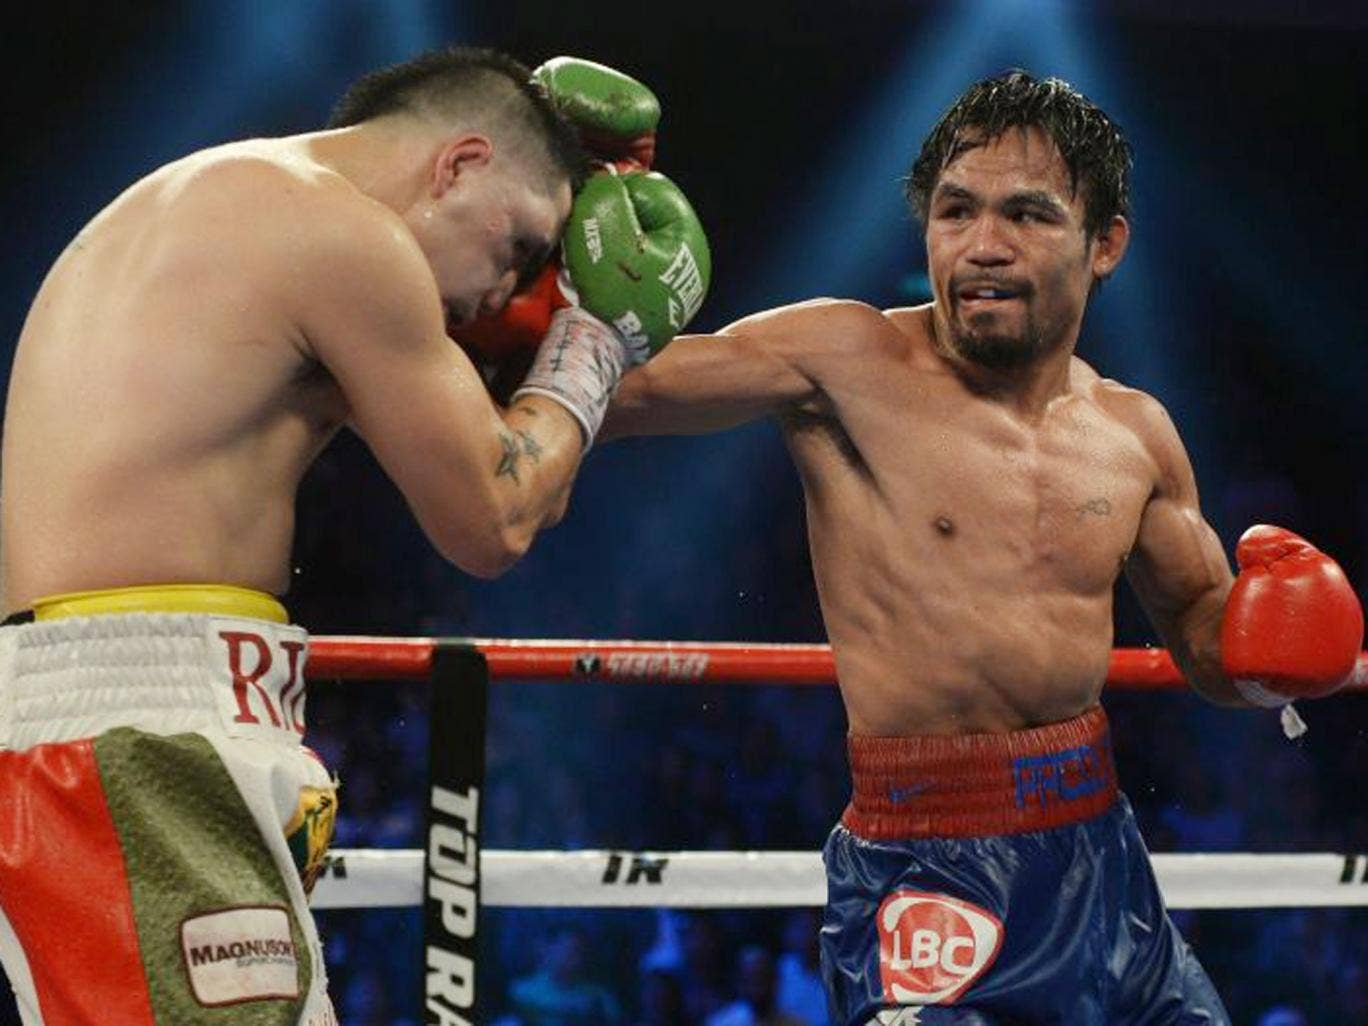 Pacquiao did all the hard work in the early rounds and was able to ease off as the final bell approached